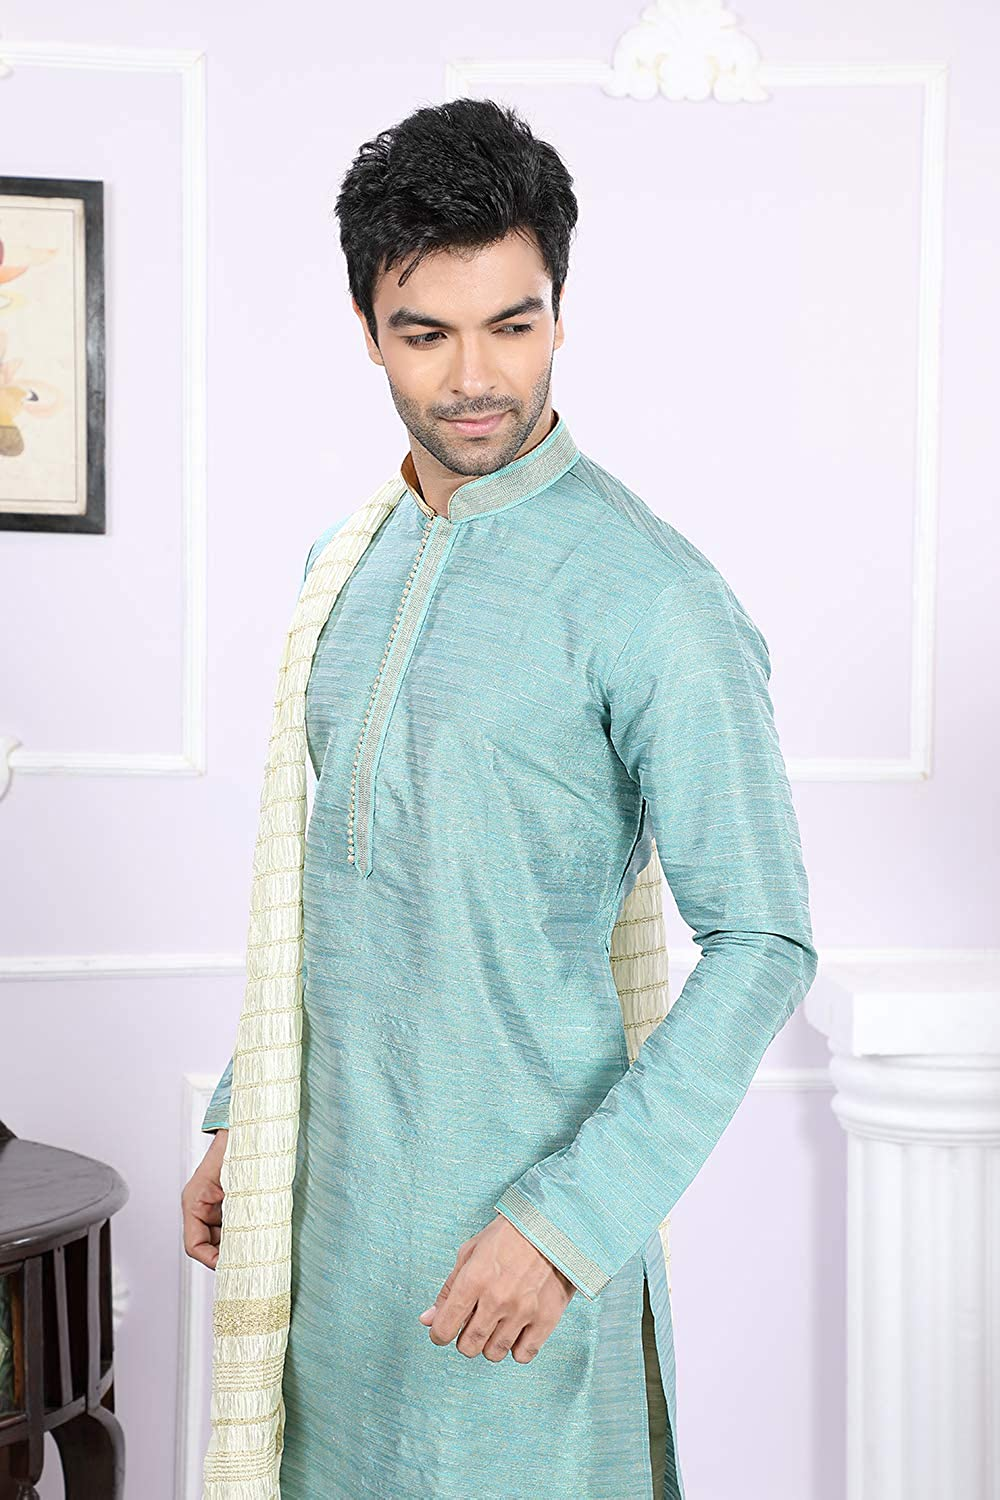 Da Facioun Indian Designer Partywear Traditional Ethnic Mens Wear Kurta Pajama. Teal